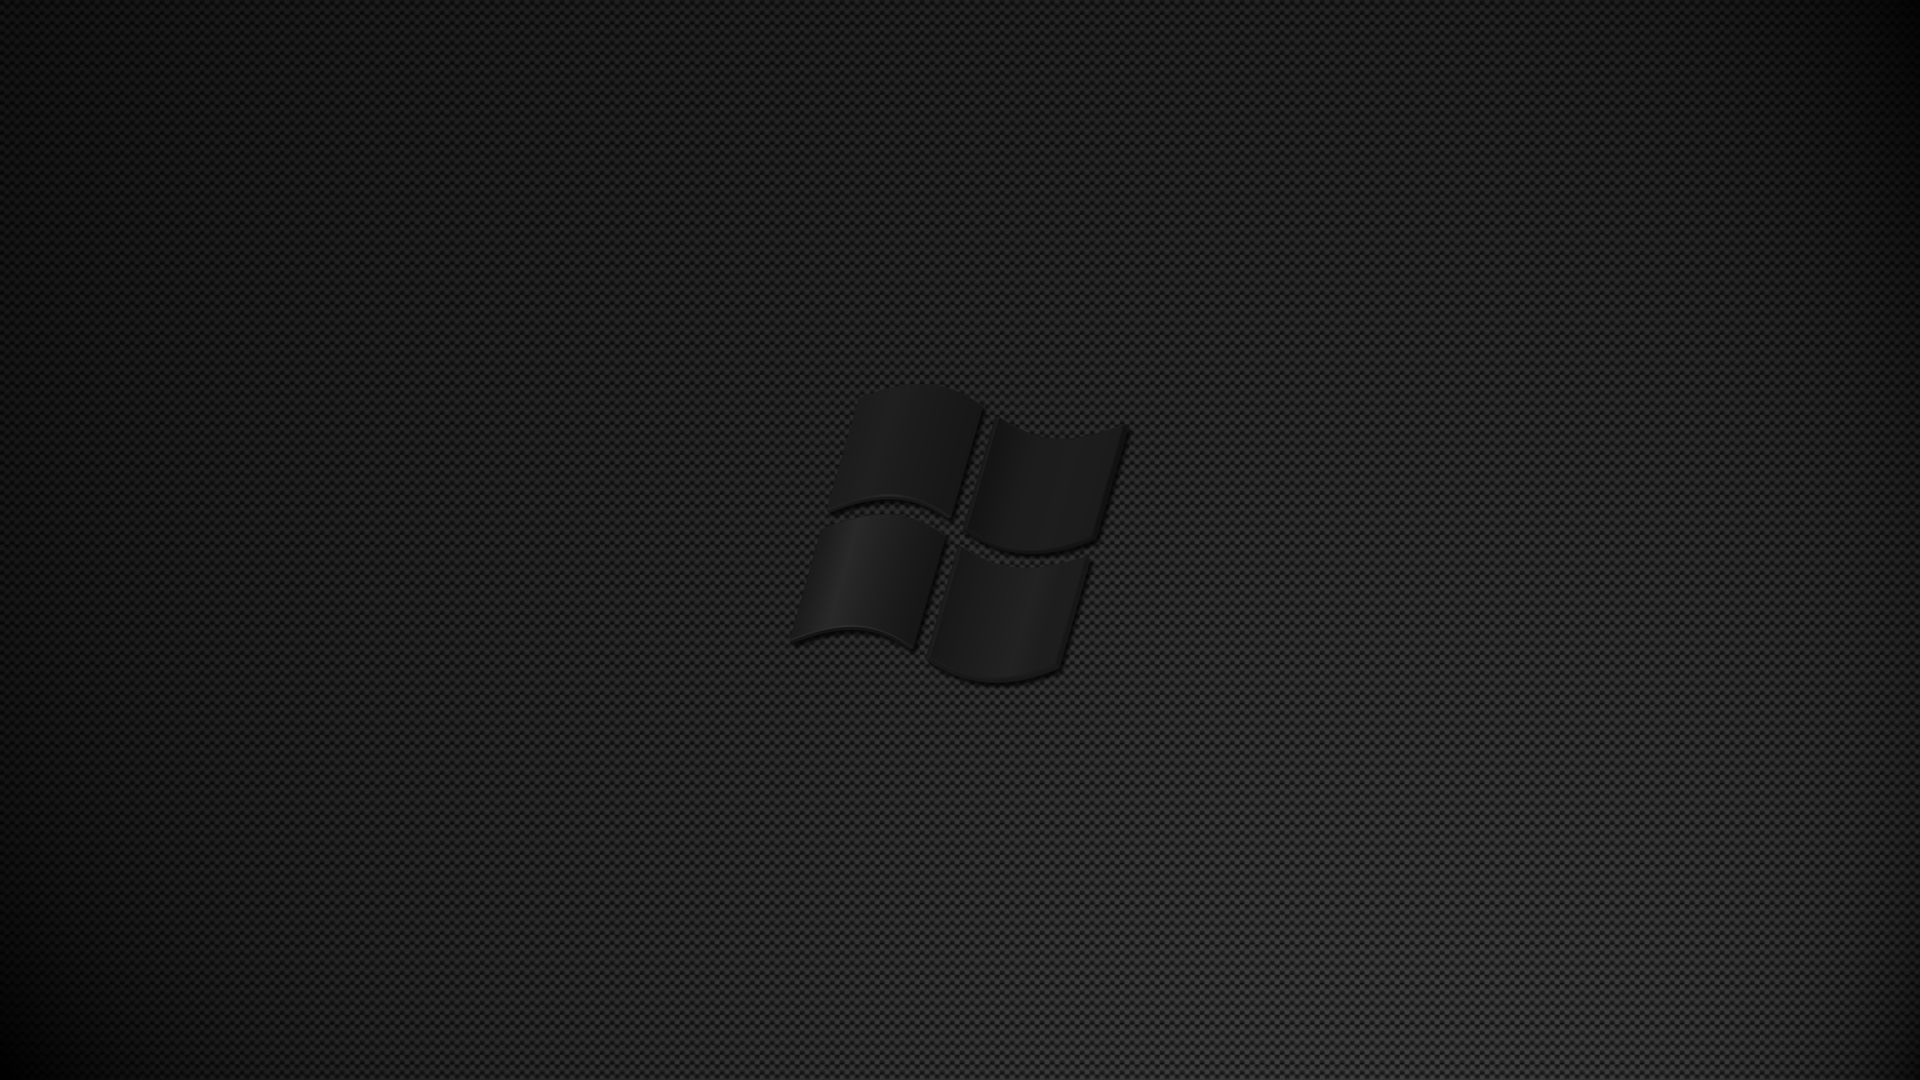 packard bell wallpapers hd windows wallpapers - HD 1920×1080